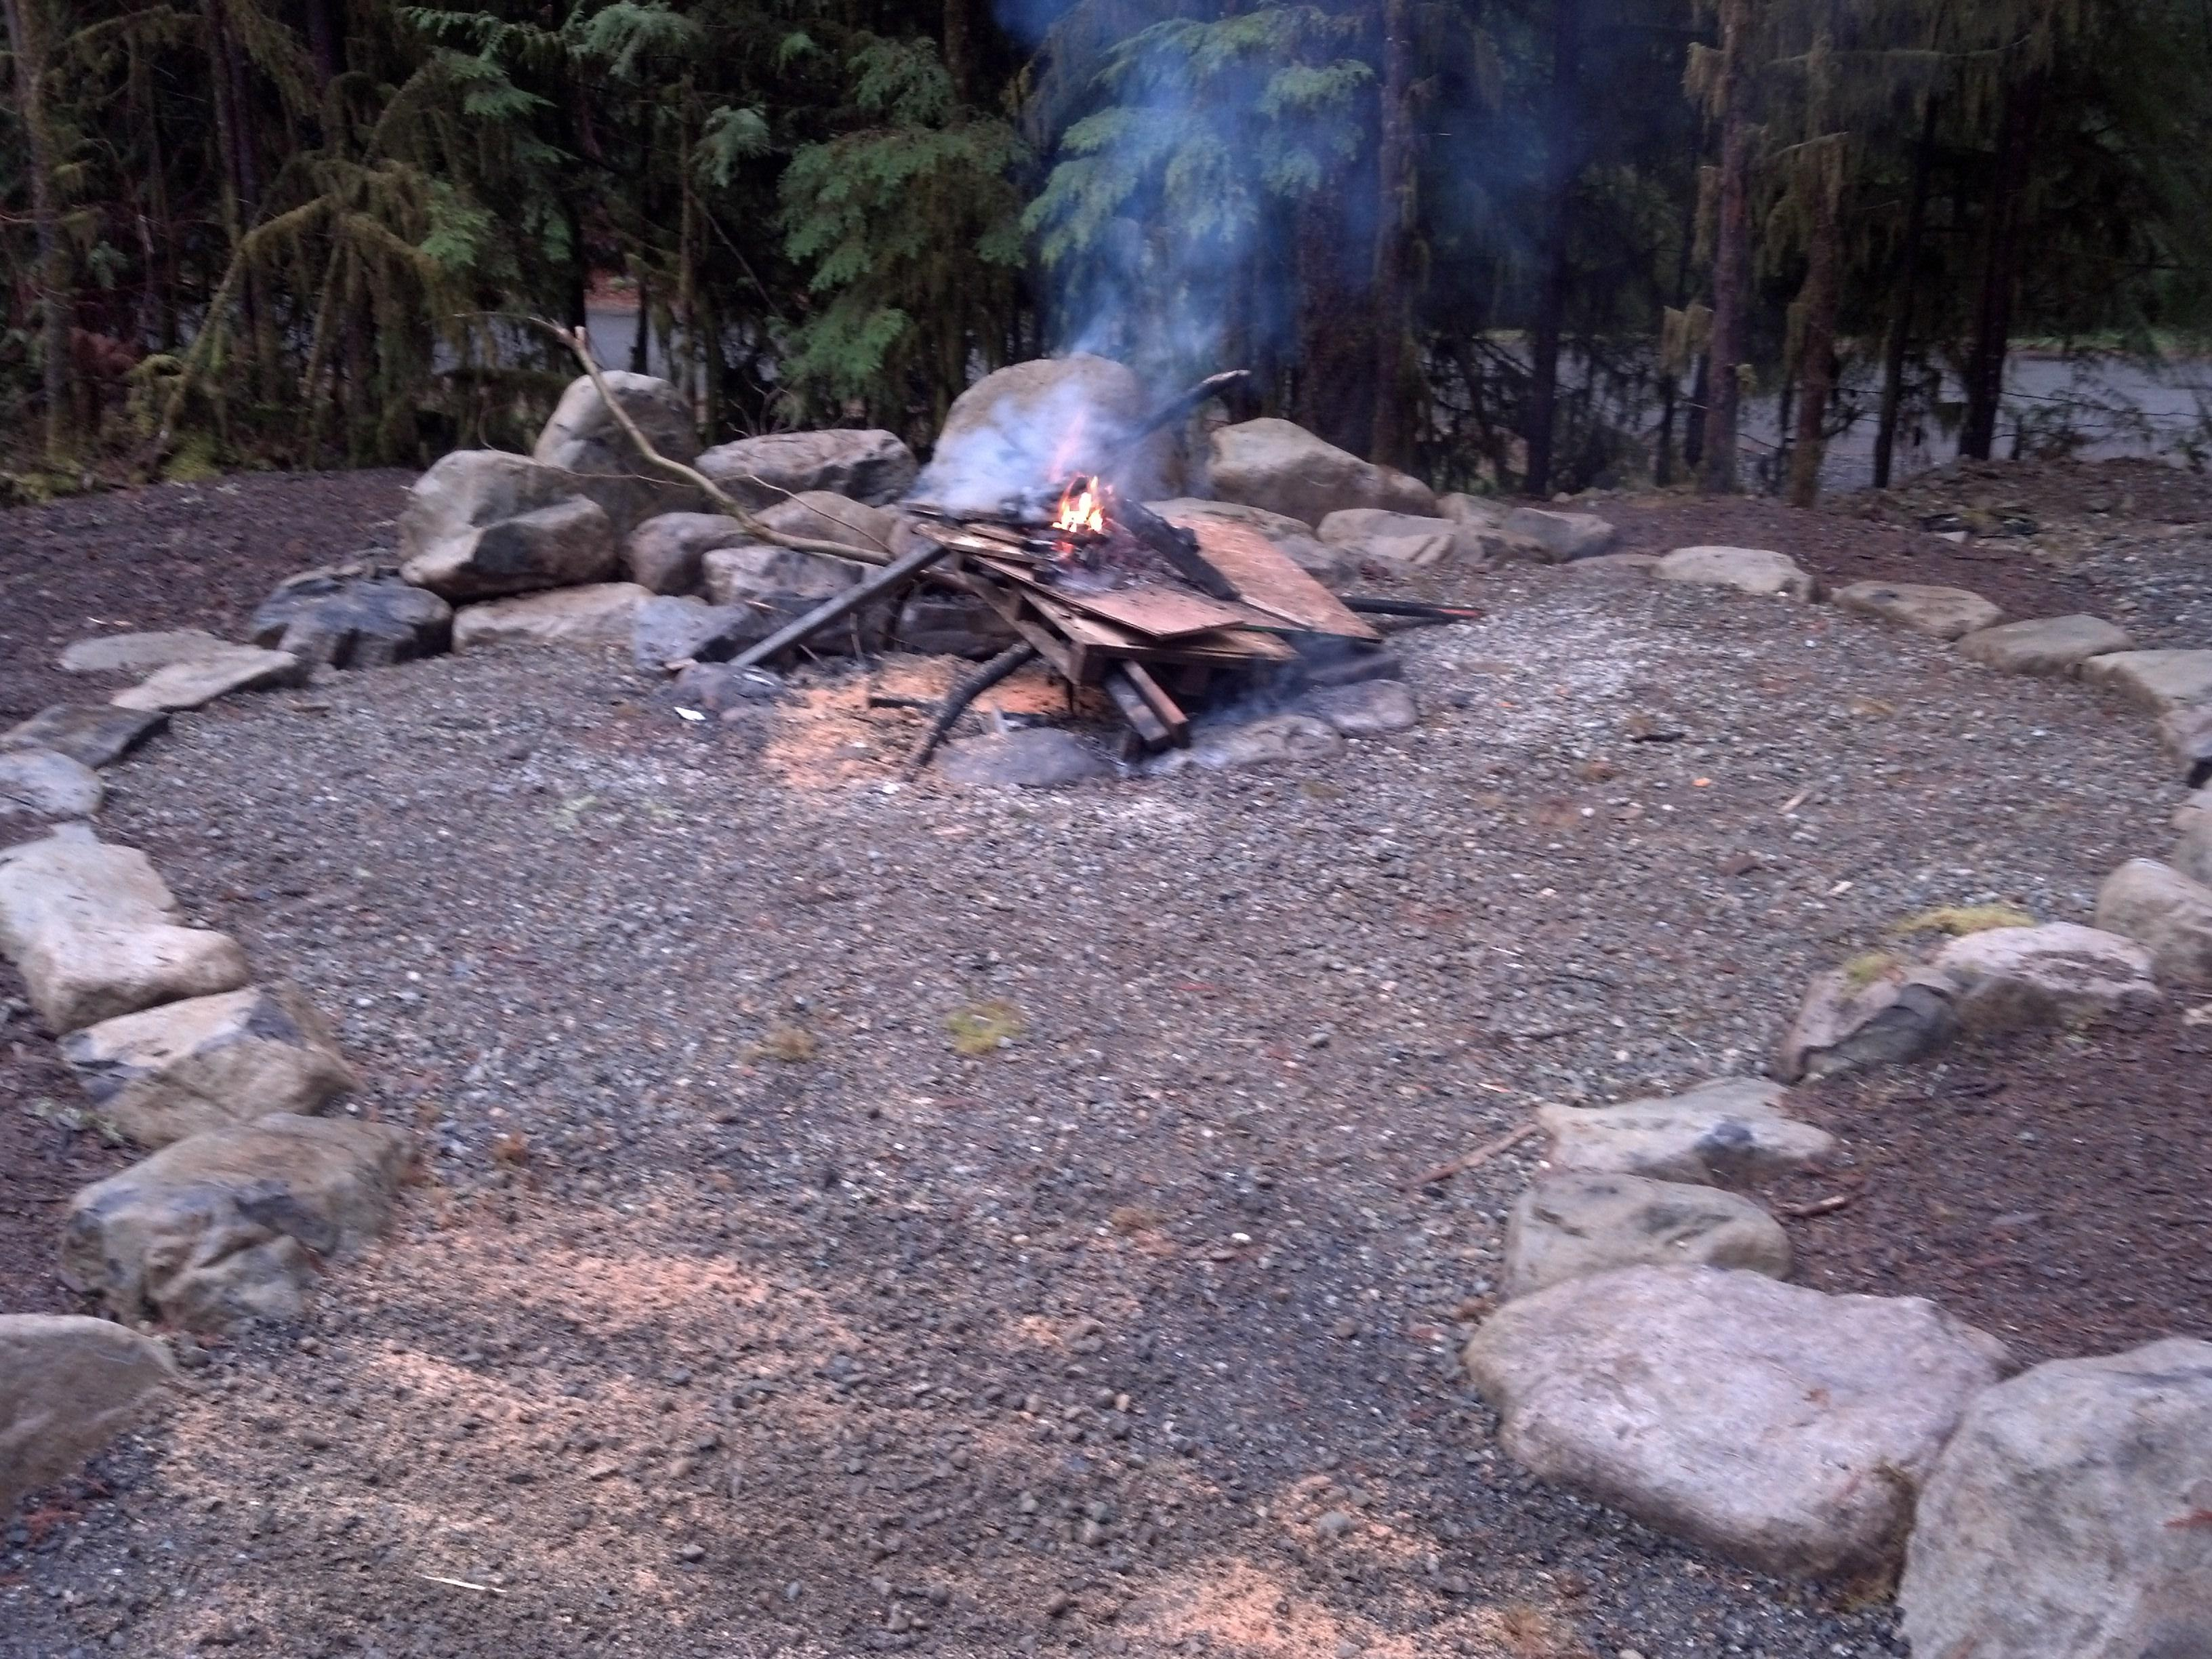 Huge Fire Pit BYOW!